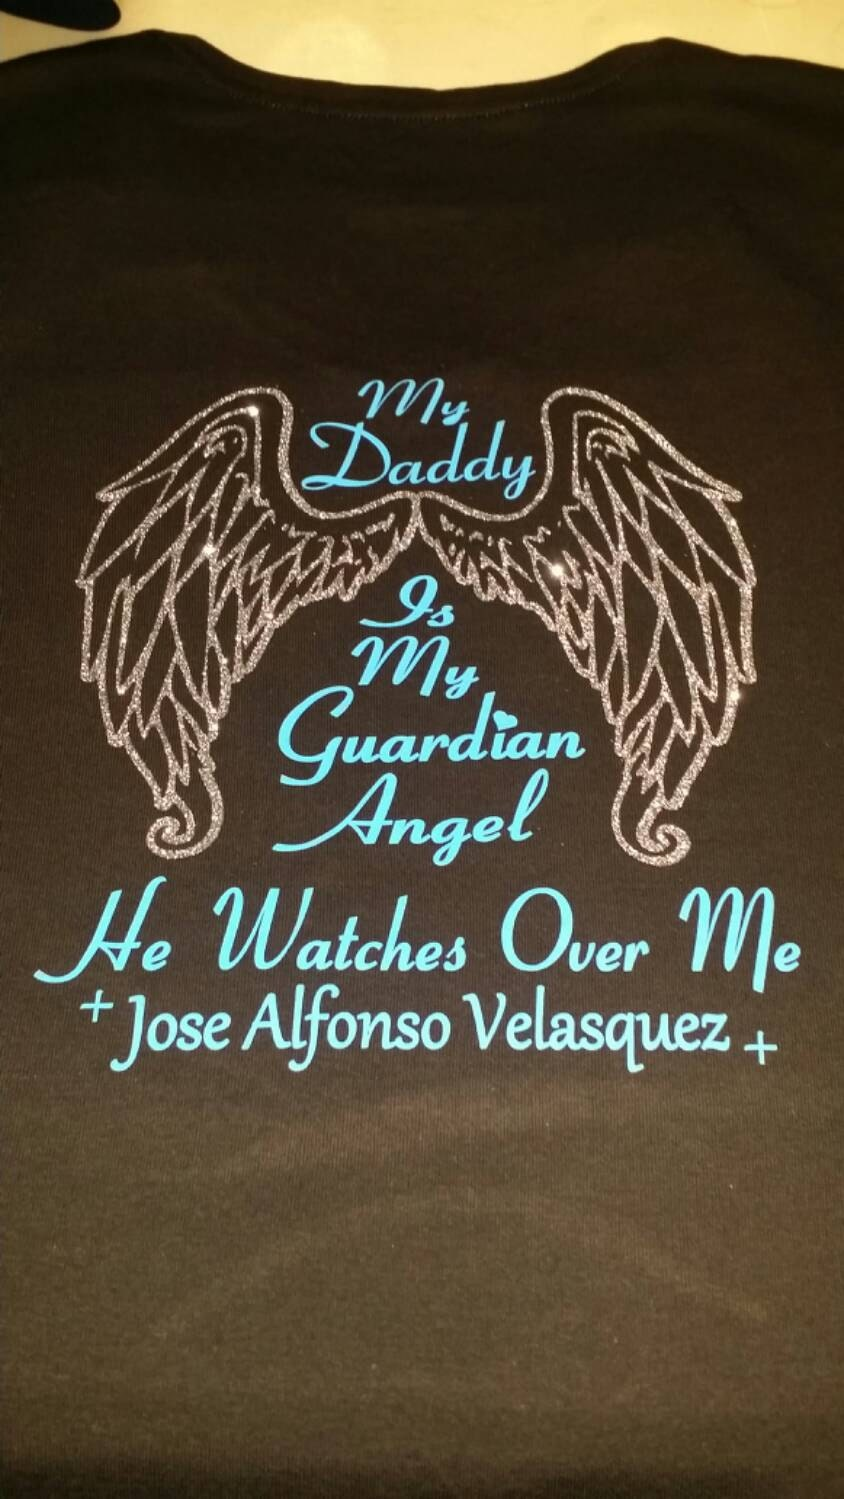 dad guardian angel quotes - photo #21